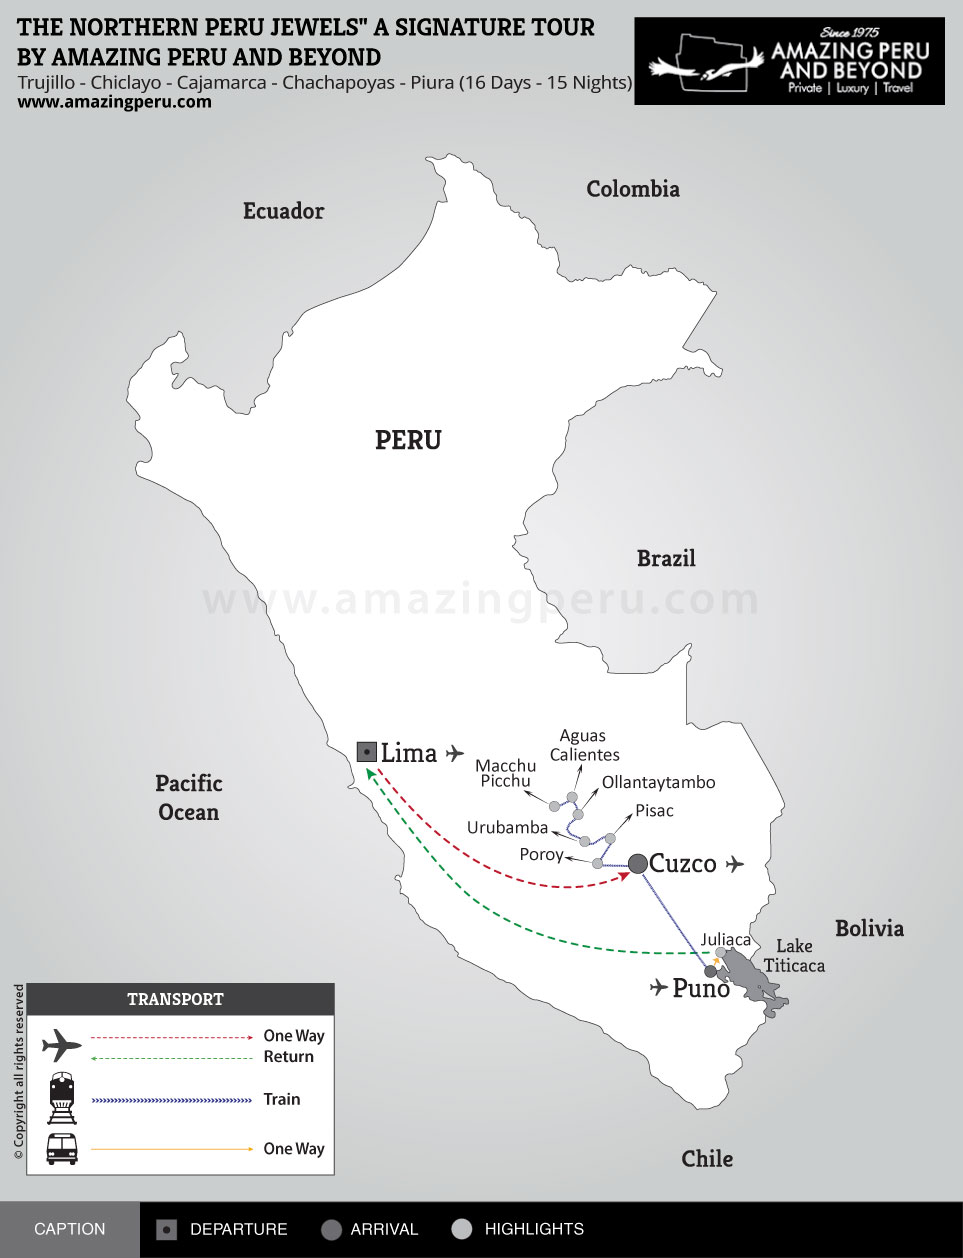 Premium Peru Tour 2 - 10 days / 9 nights.